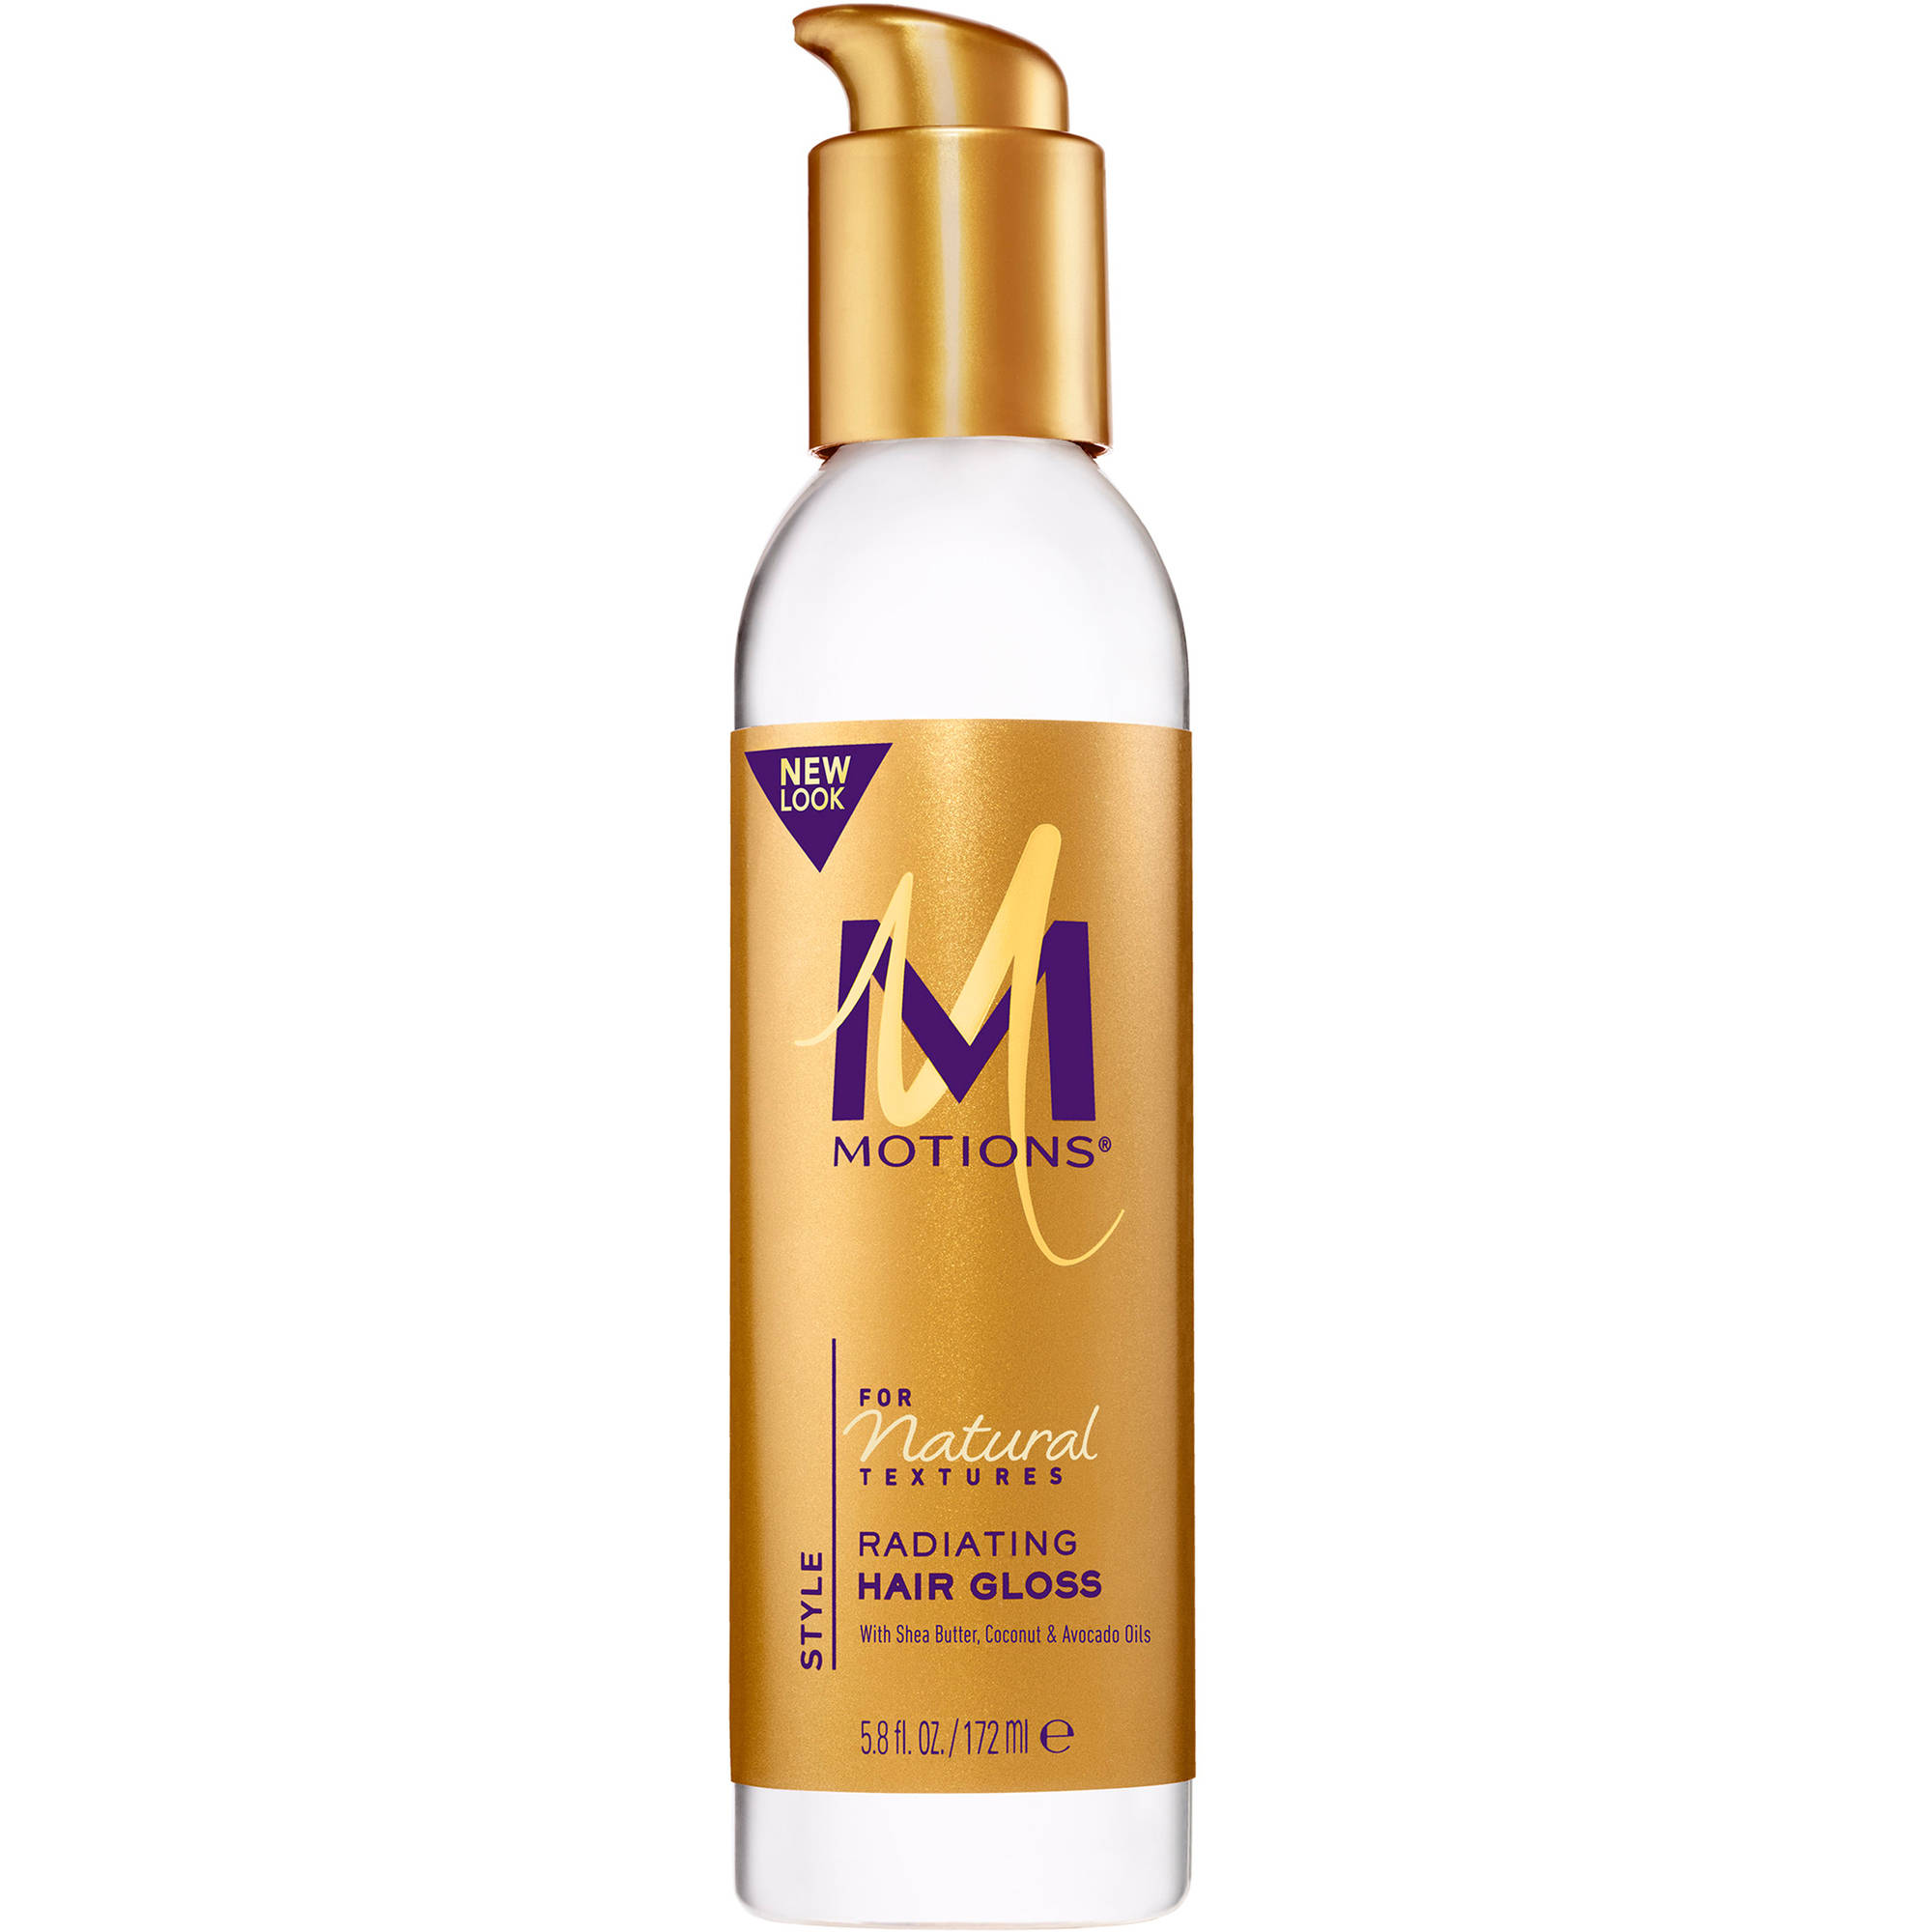 Motions Natural Textures With Shea Butter, Coconut and Avocado Oils Radiating Hair Gloss, 6 fl oz